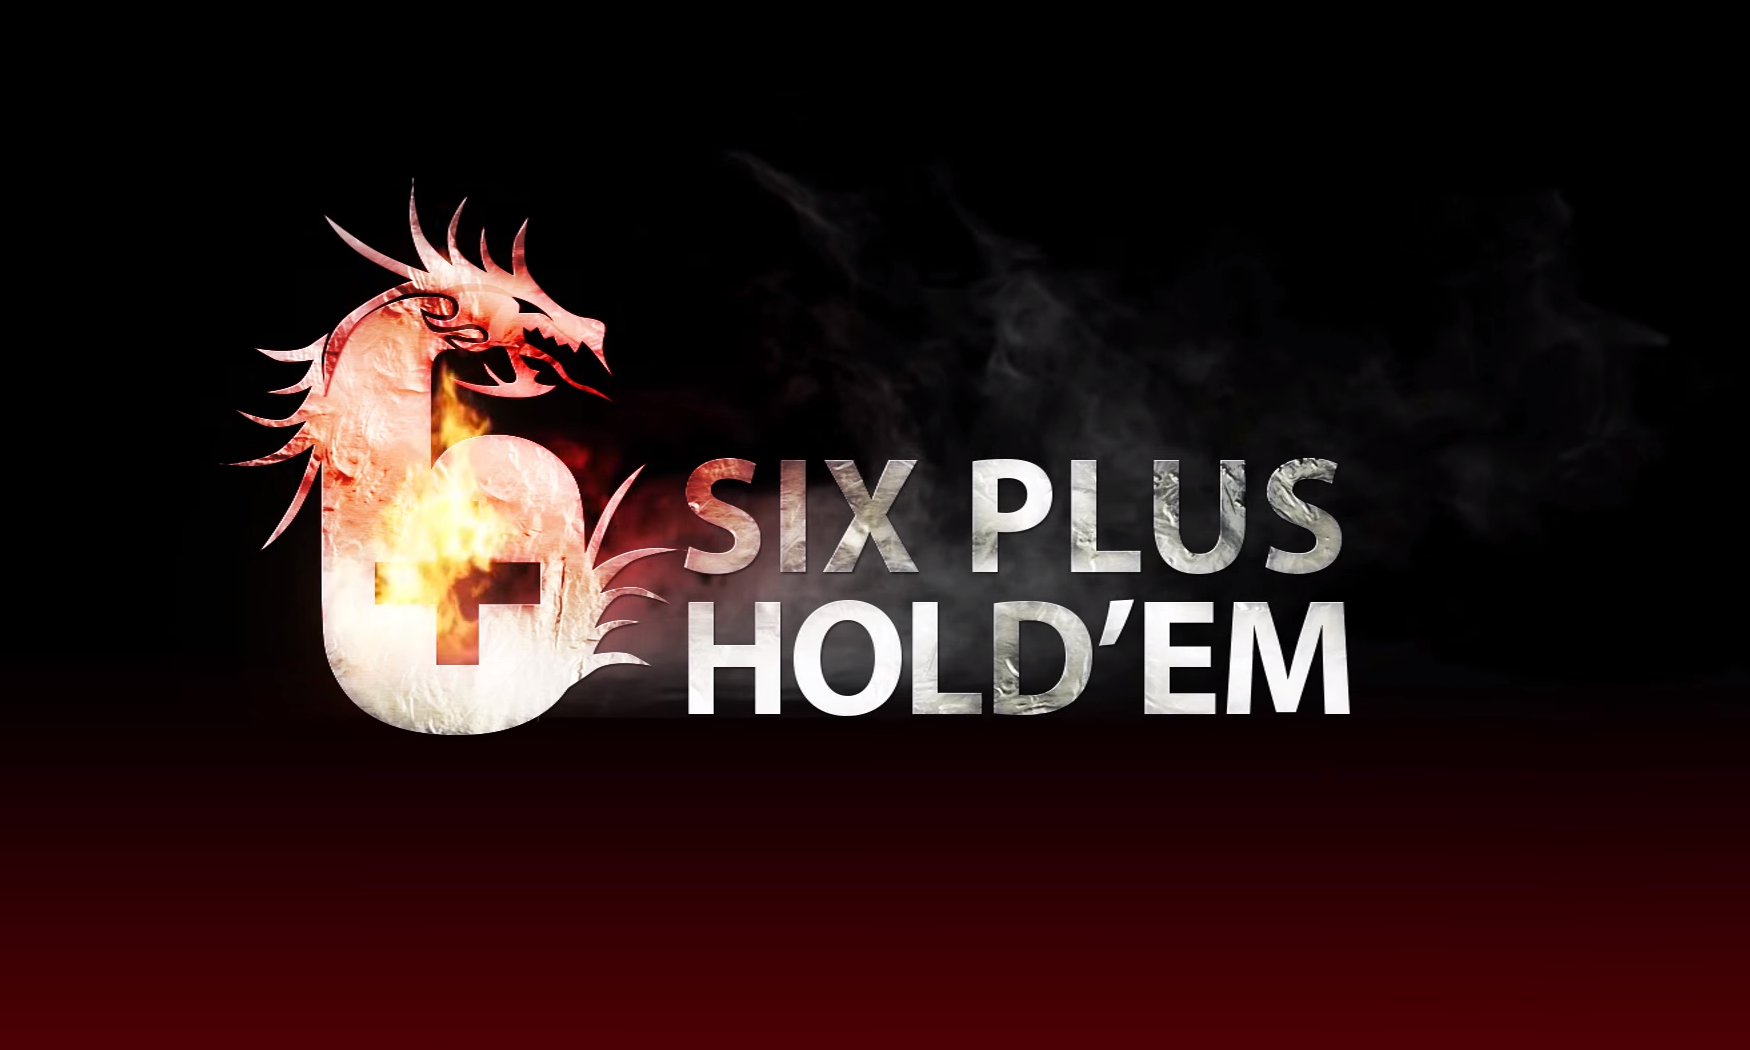 Six-Plus Hold'em: from Macao to Online Poker Rooms